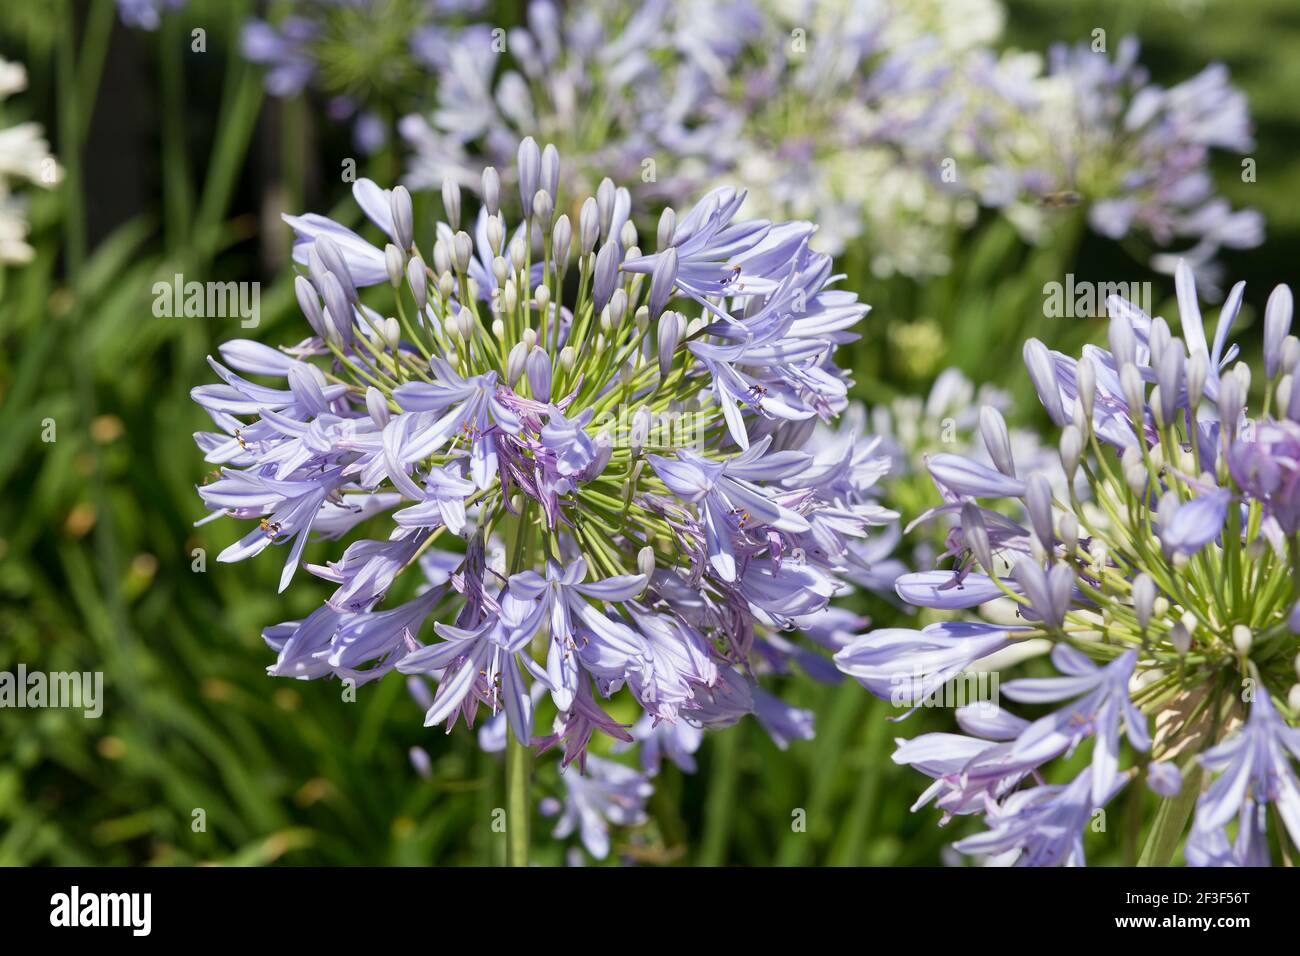 vibrant purple Agapanthus flower in spring time Stock Photo